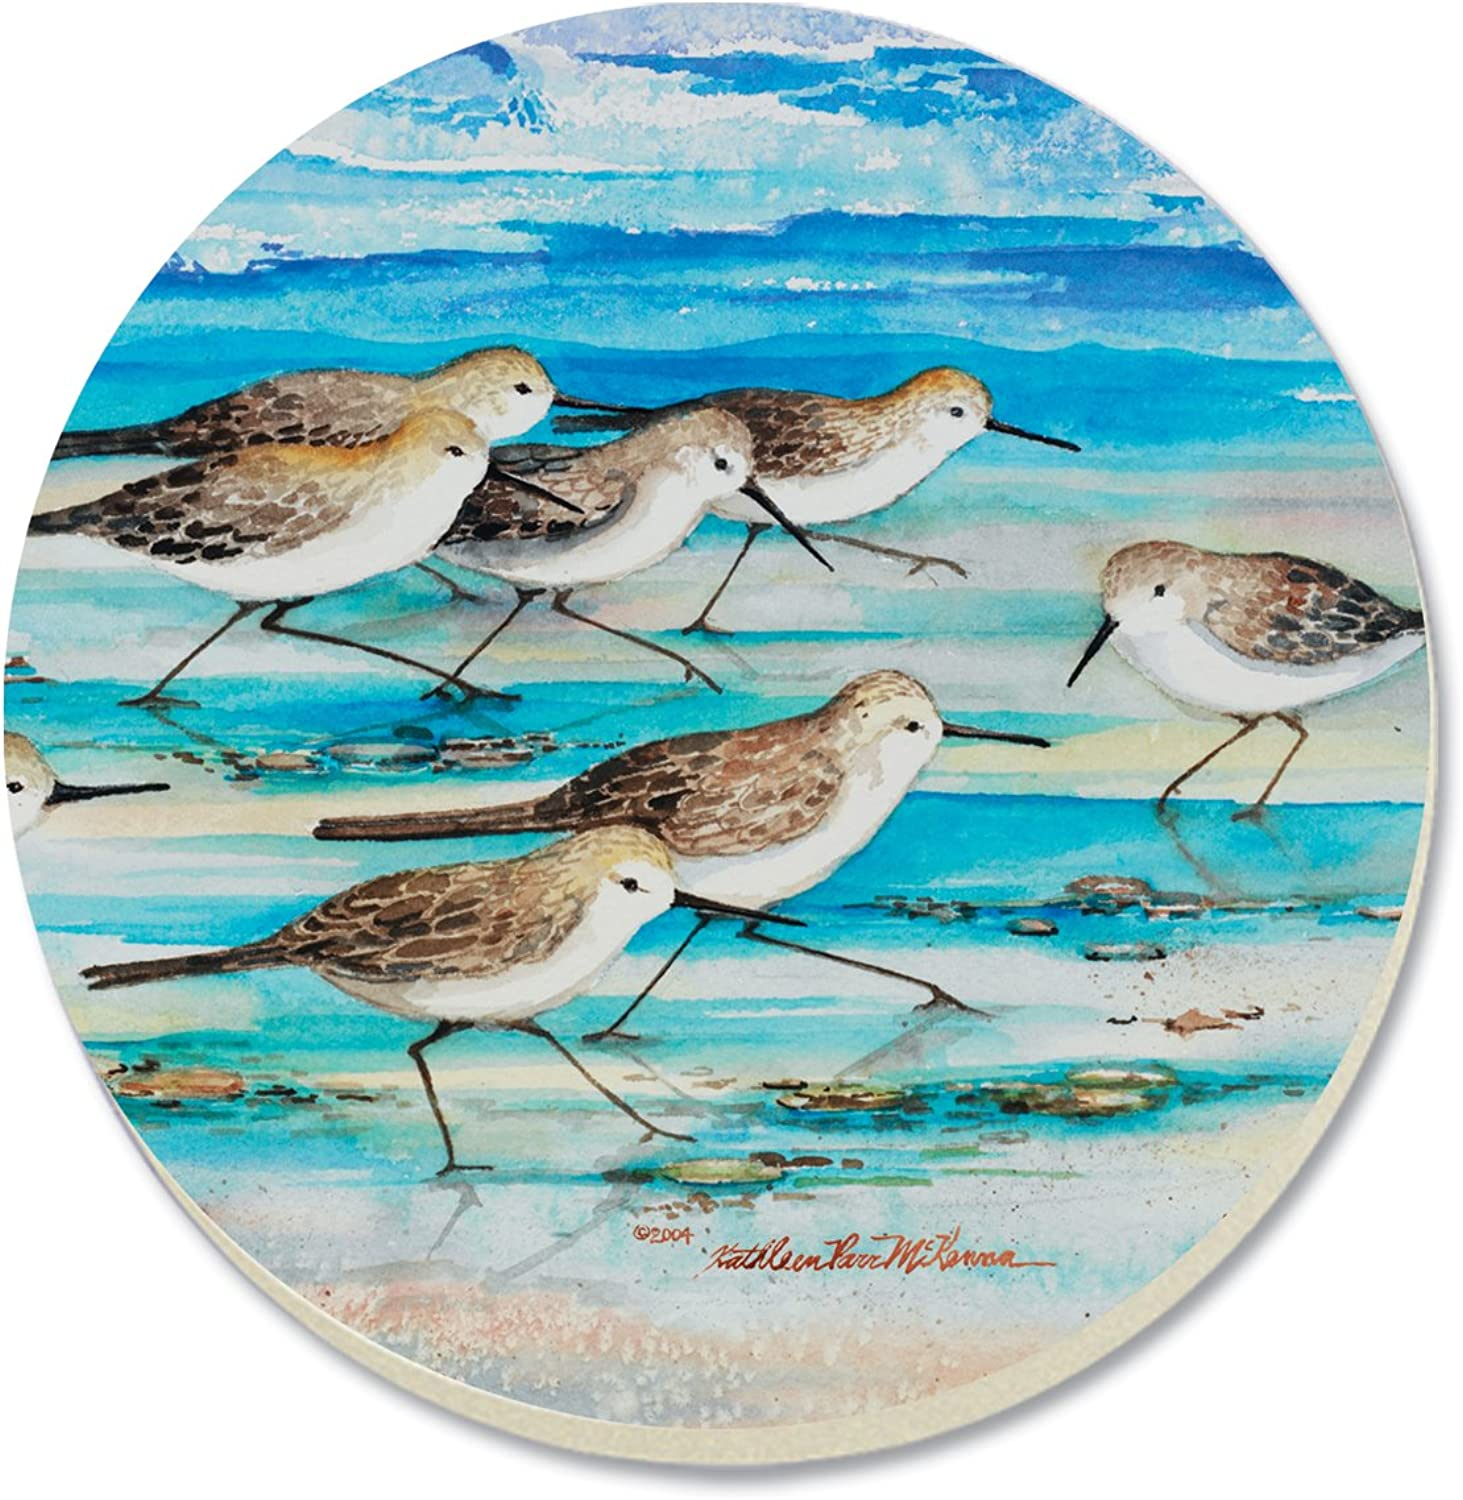 Nuevos productos de artículos novedosos. CounterArt Decorative Absorbent Coasters, Shore Birds, Set of 4 by by by CounterArt  despacho de tienda